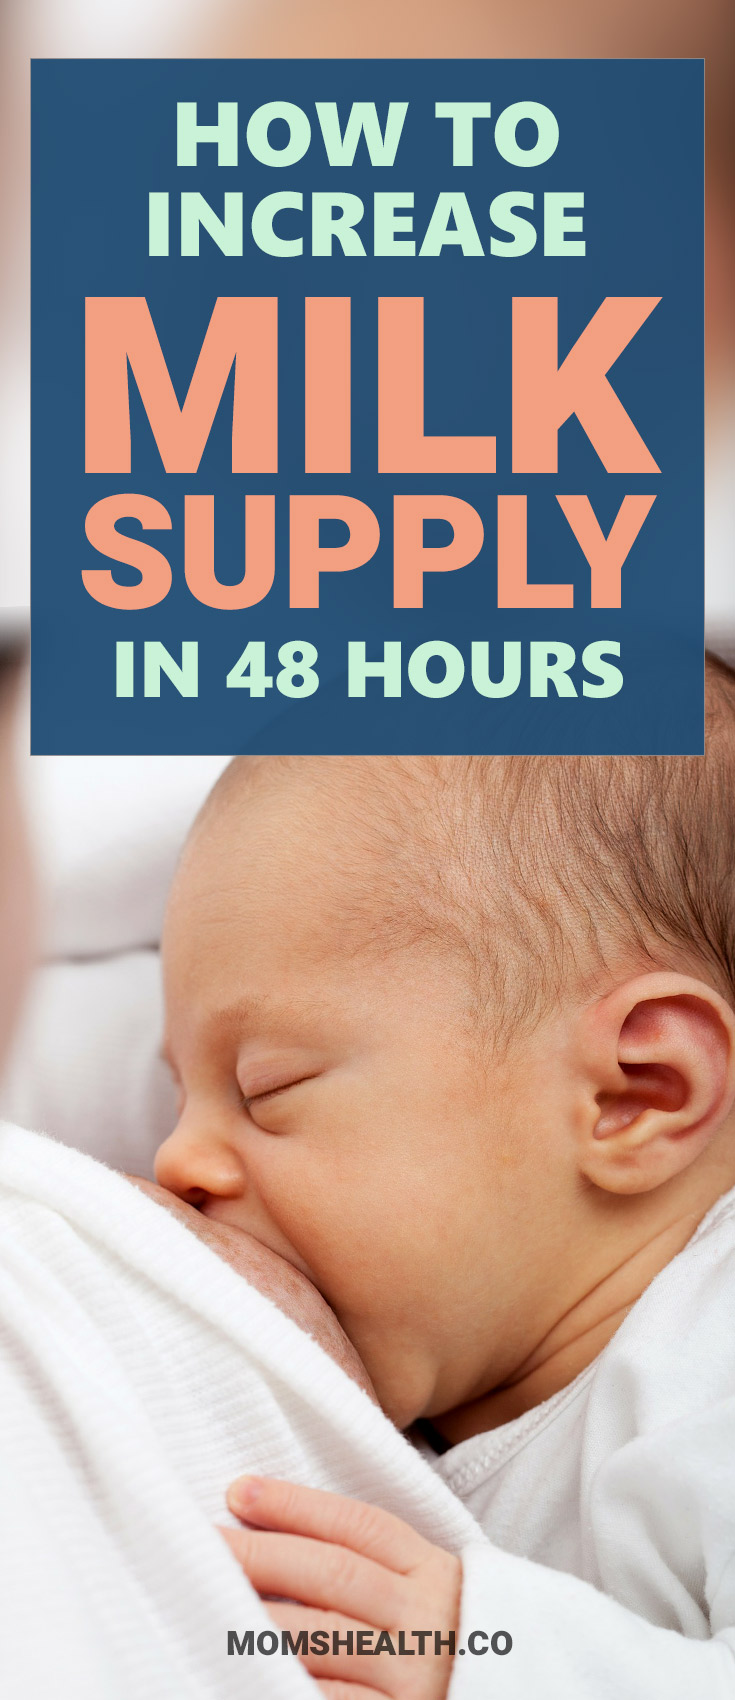 You probably have been struggling to increase your milk supply at least once as a breastfeeding mother. It's not the end of the world, you just need to mobilize your efforts and focus on a mission of increasing low milk supply in the next 48 hours. It's totally doable, and let me tell you what you need to do.